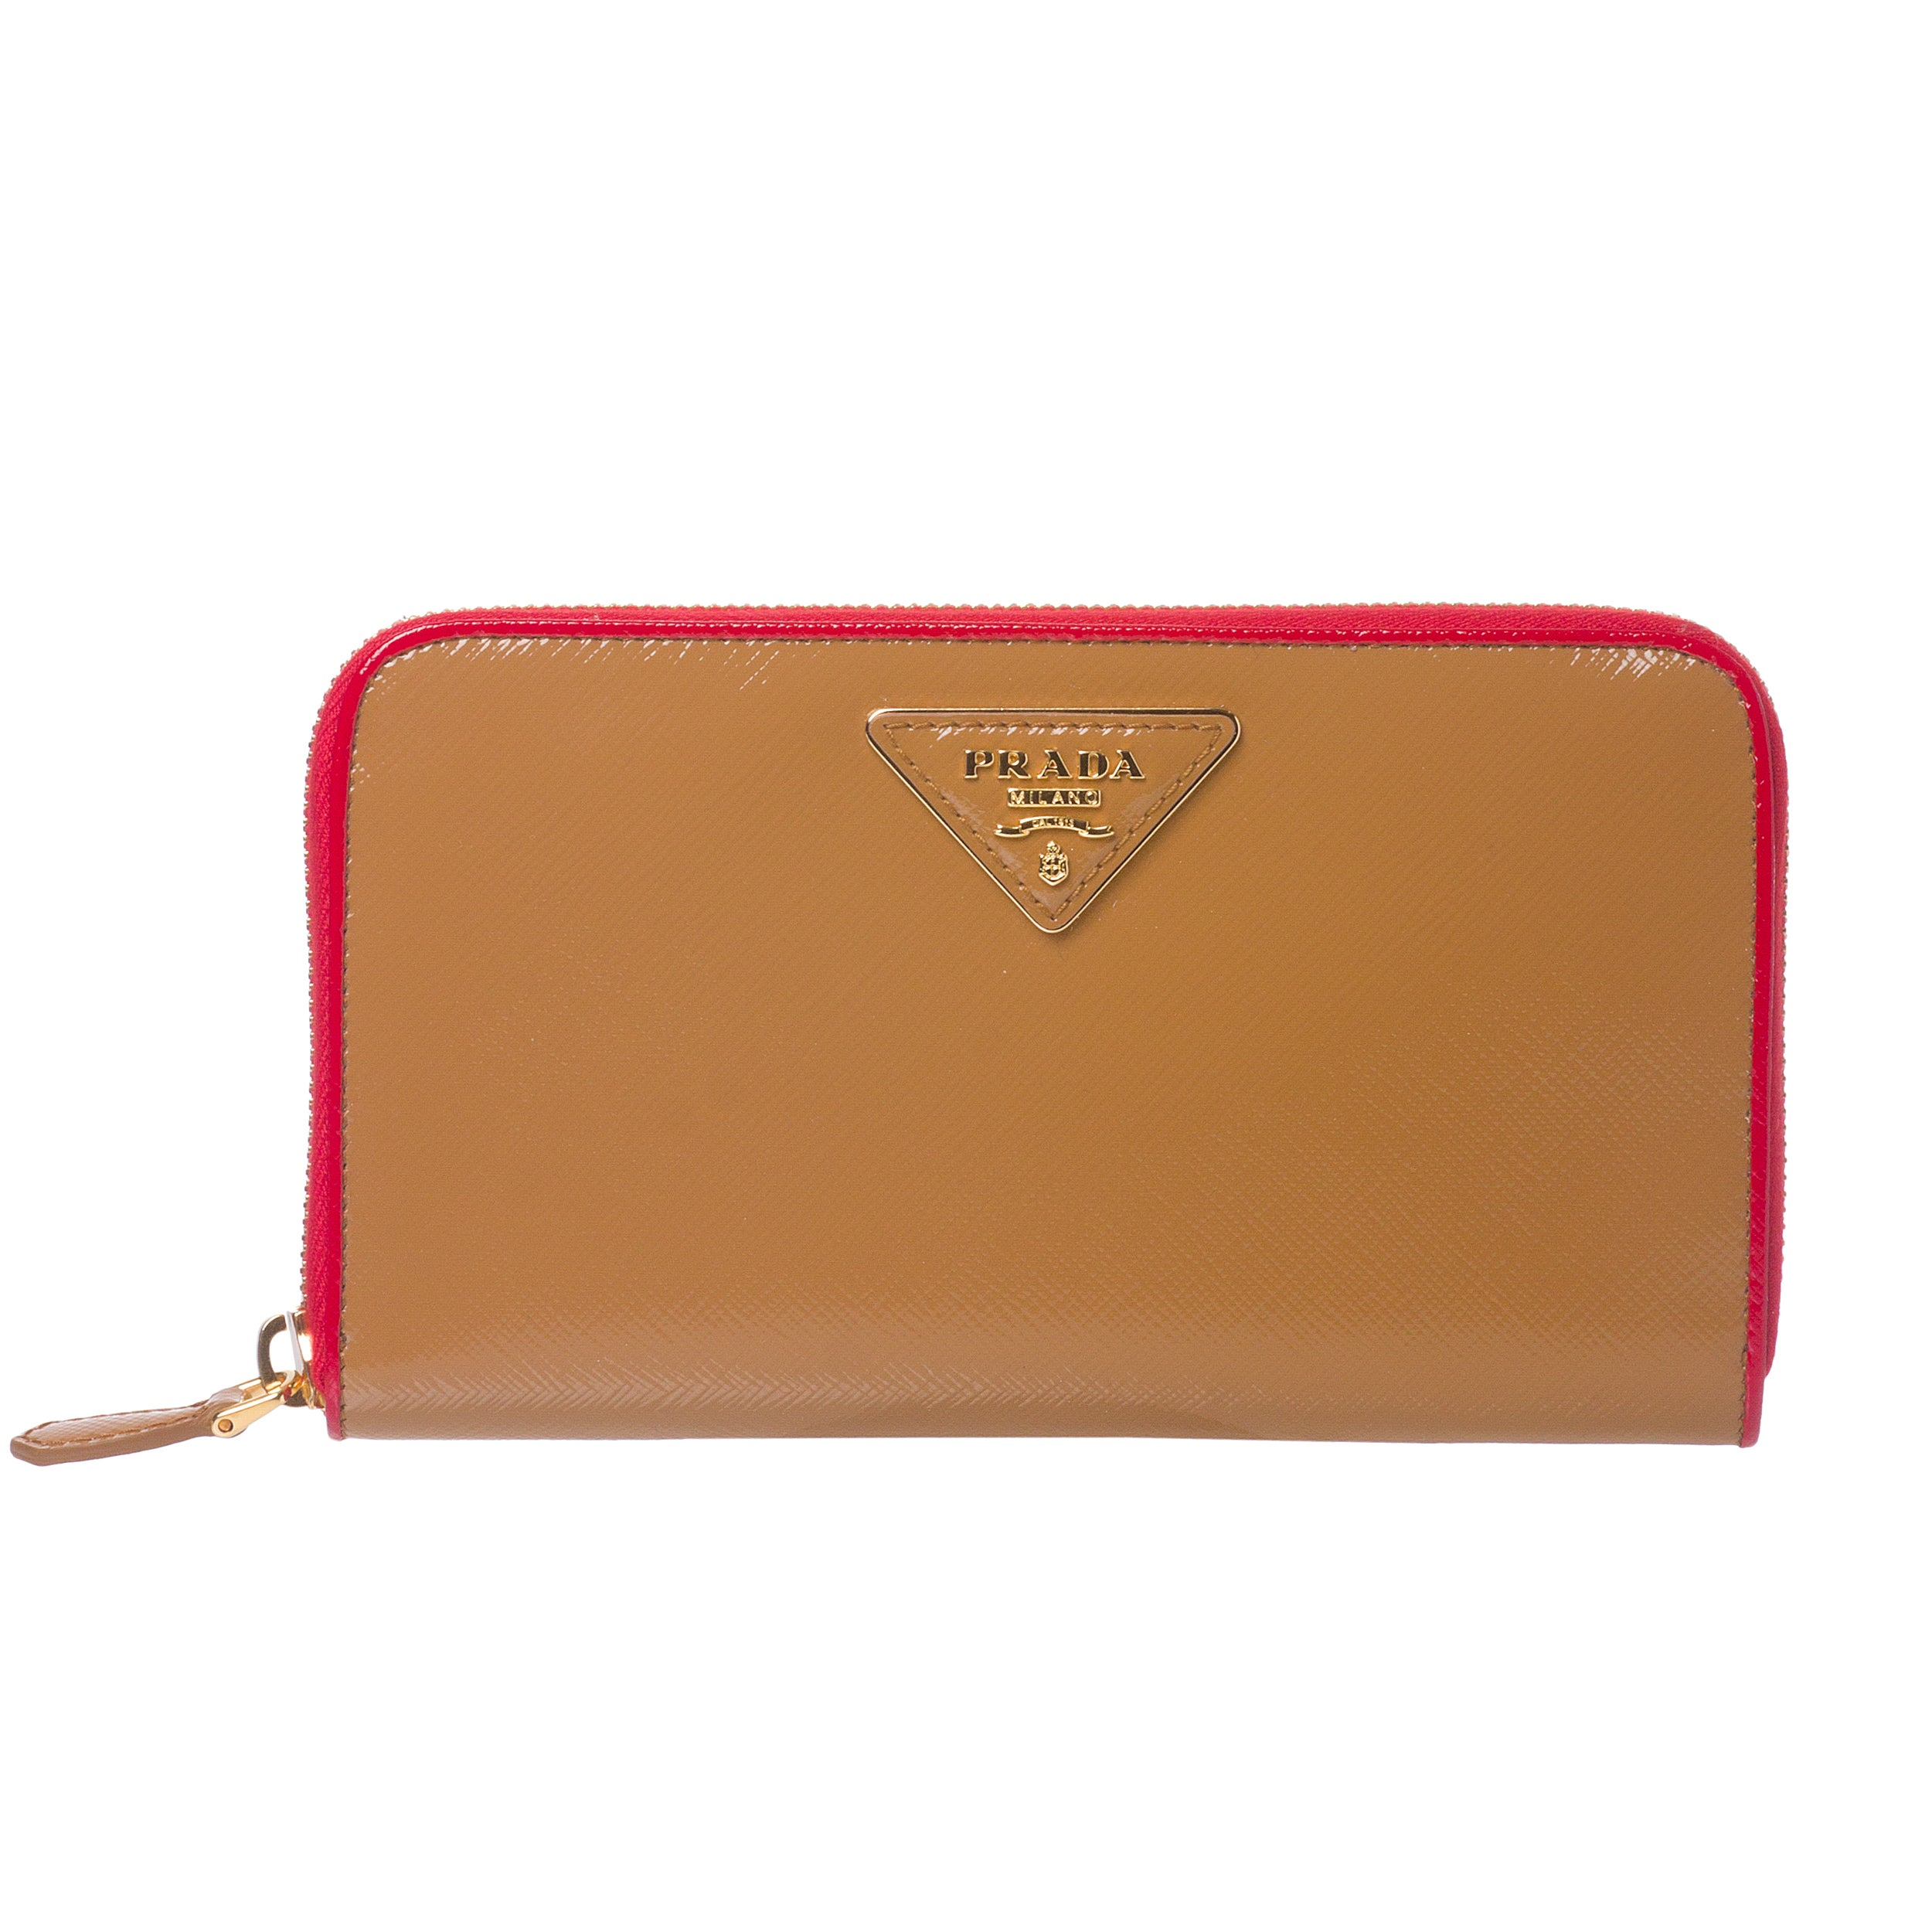 Prada Tan/ Red Color-block Saffiano Patent Leather Wallet ...